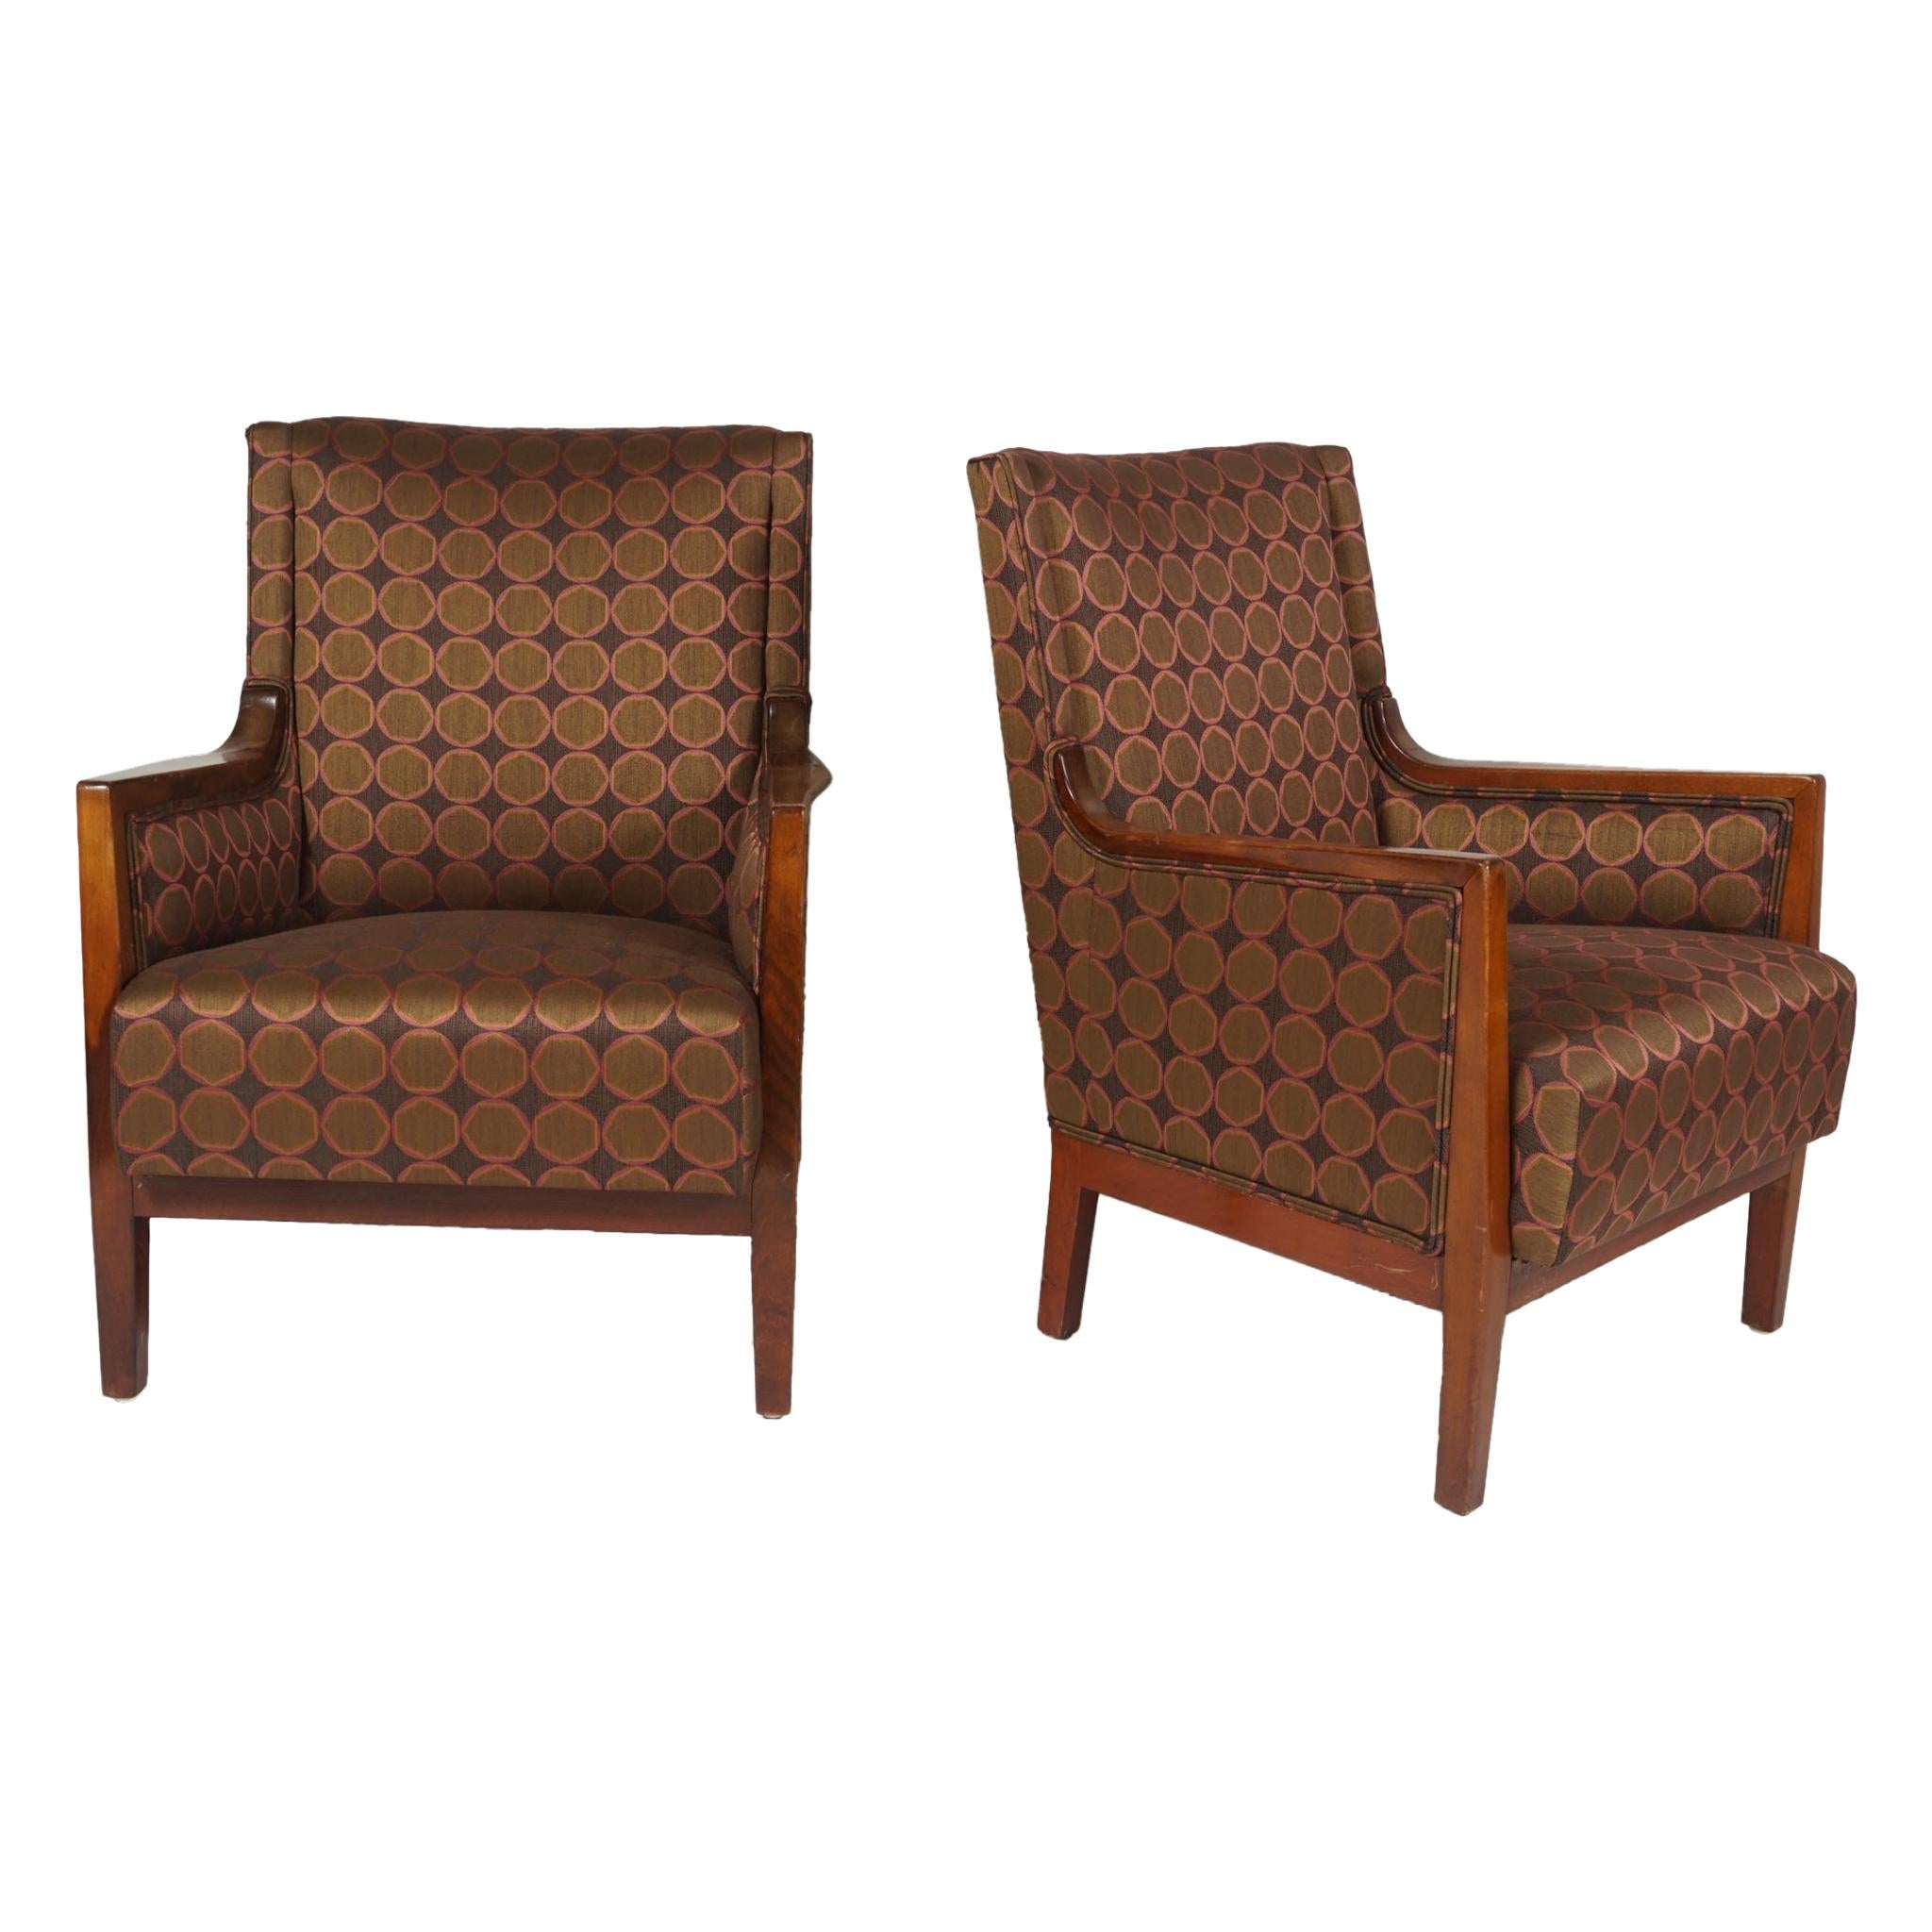 Pair of Danish 1920s-1930s Mahogany Bergeres